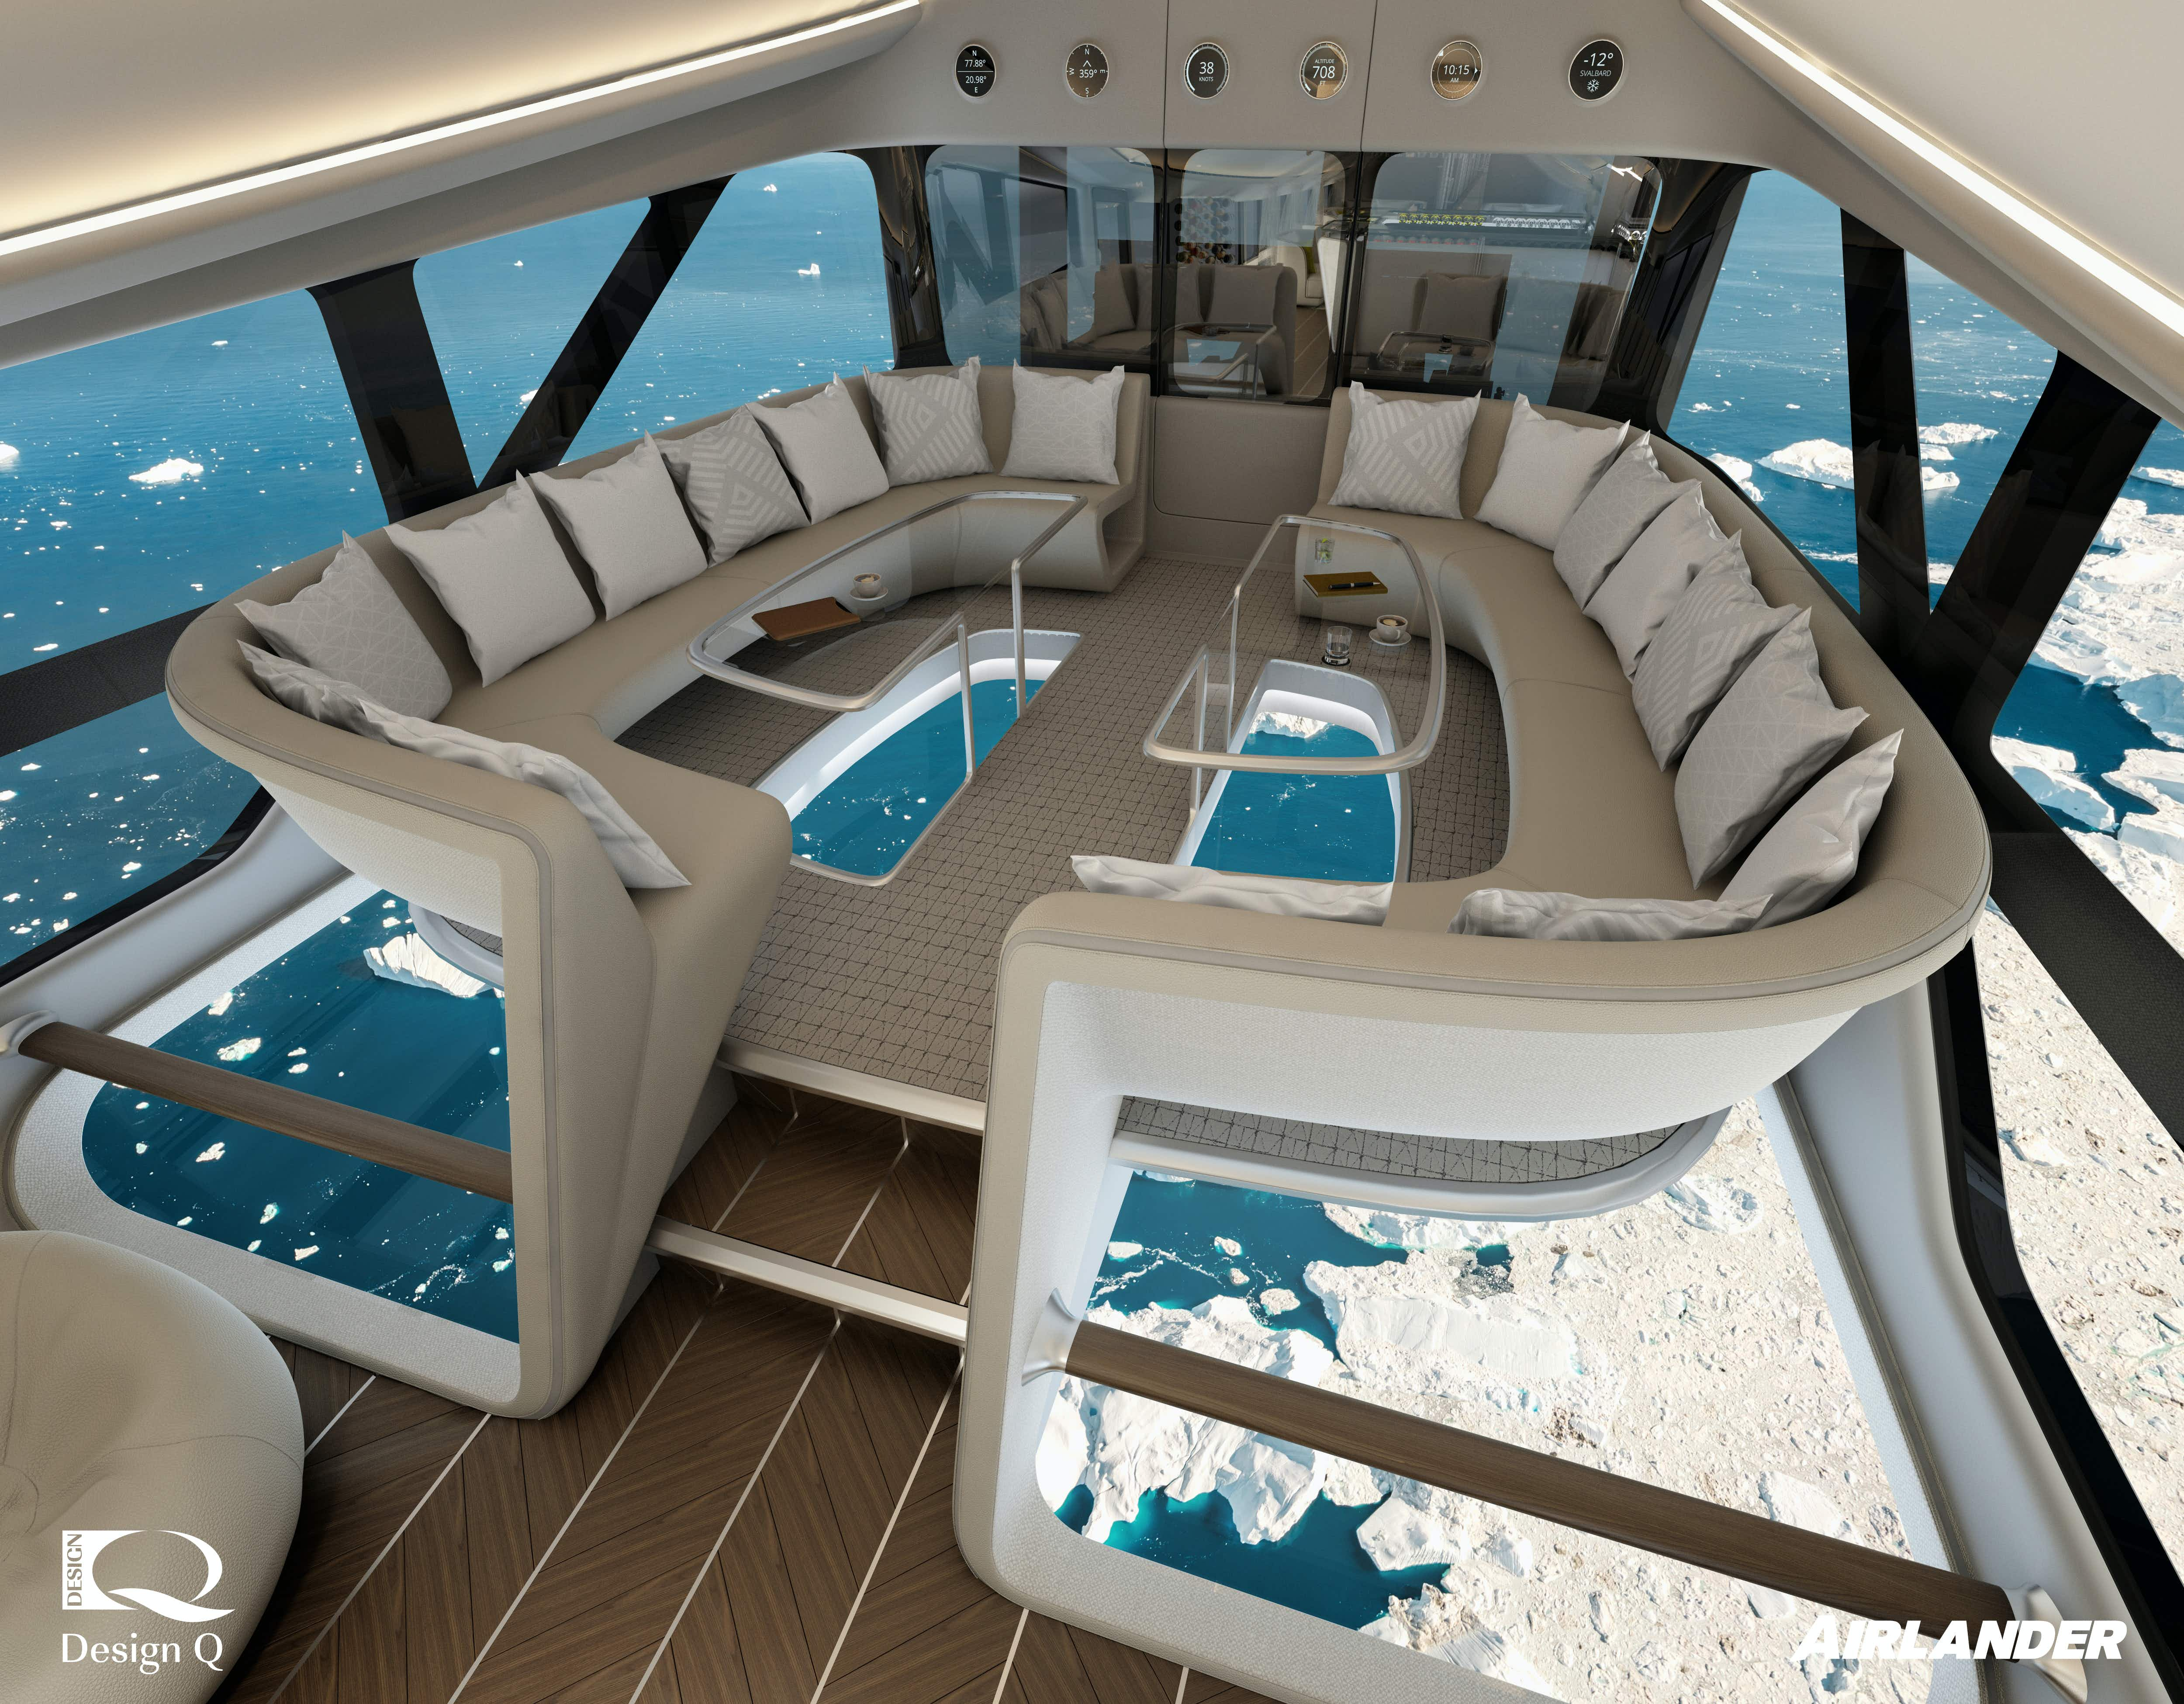 Inside the world's new luxury airline with glass floors and private rooms